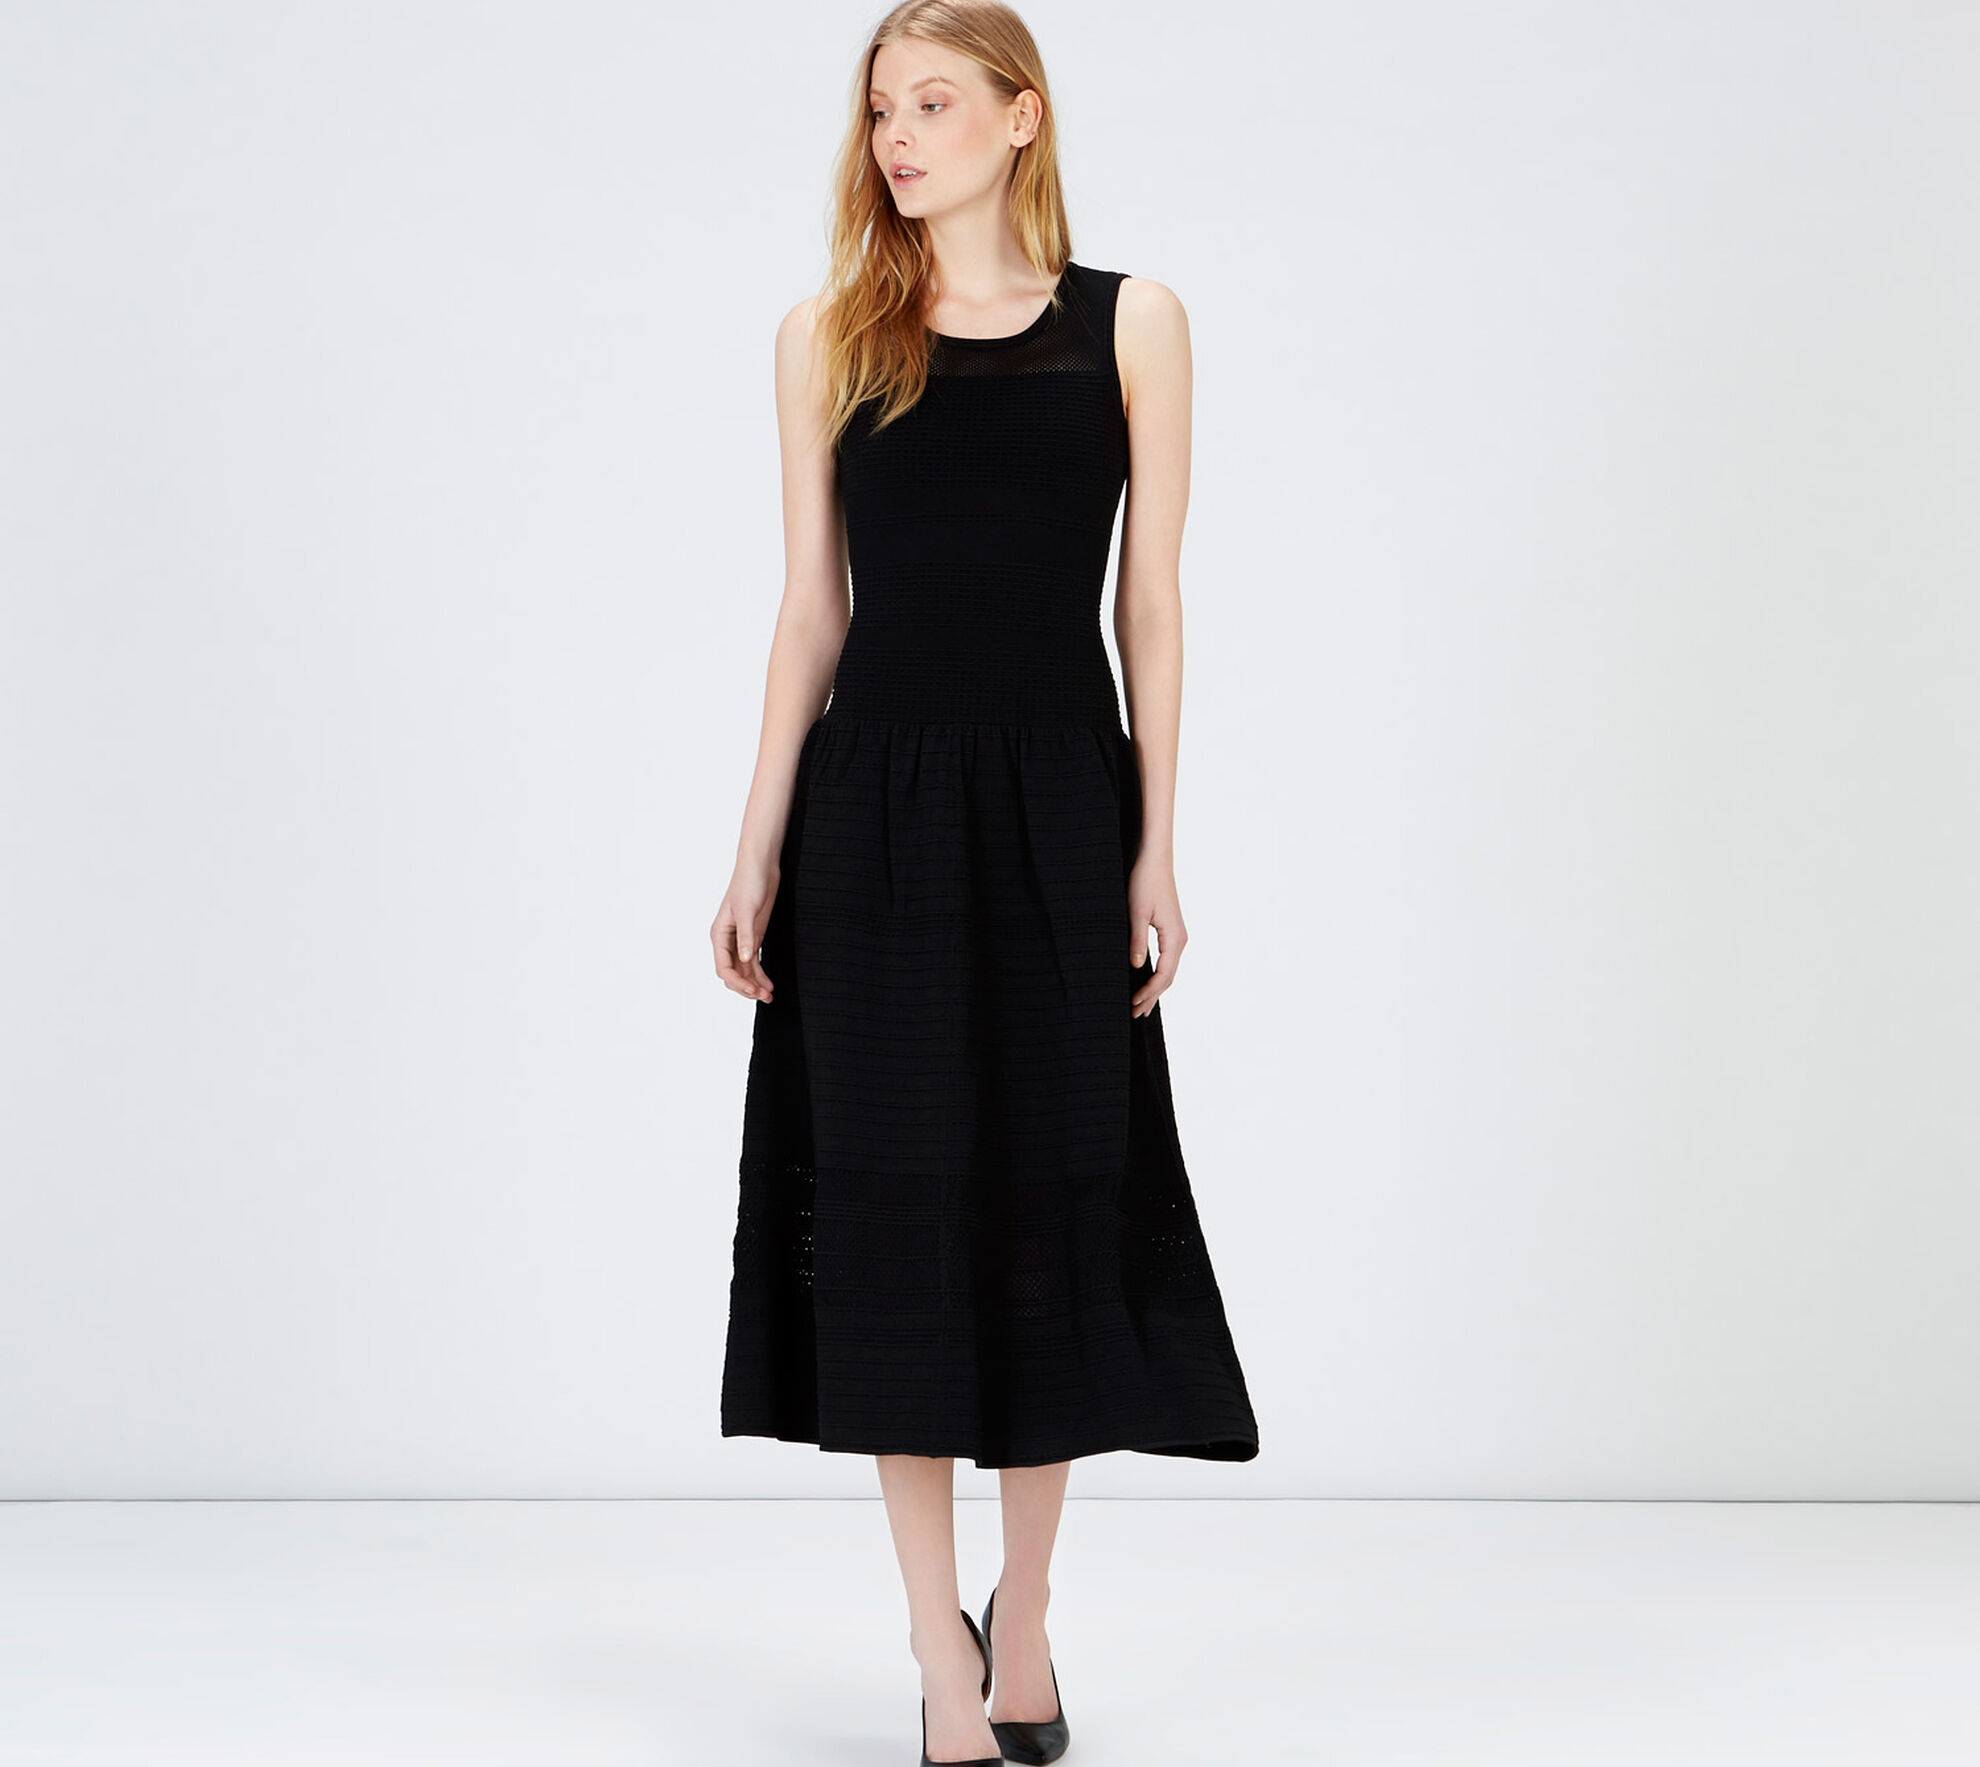 Knitted dresses are versatile pieces that adapt to every woman's style. Discover classic fit, long or oversized sweater dresses in plain colours or with trendy prints and applique details.